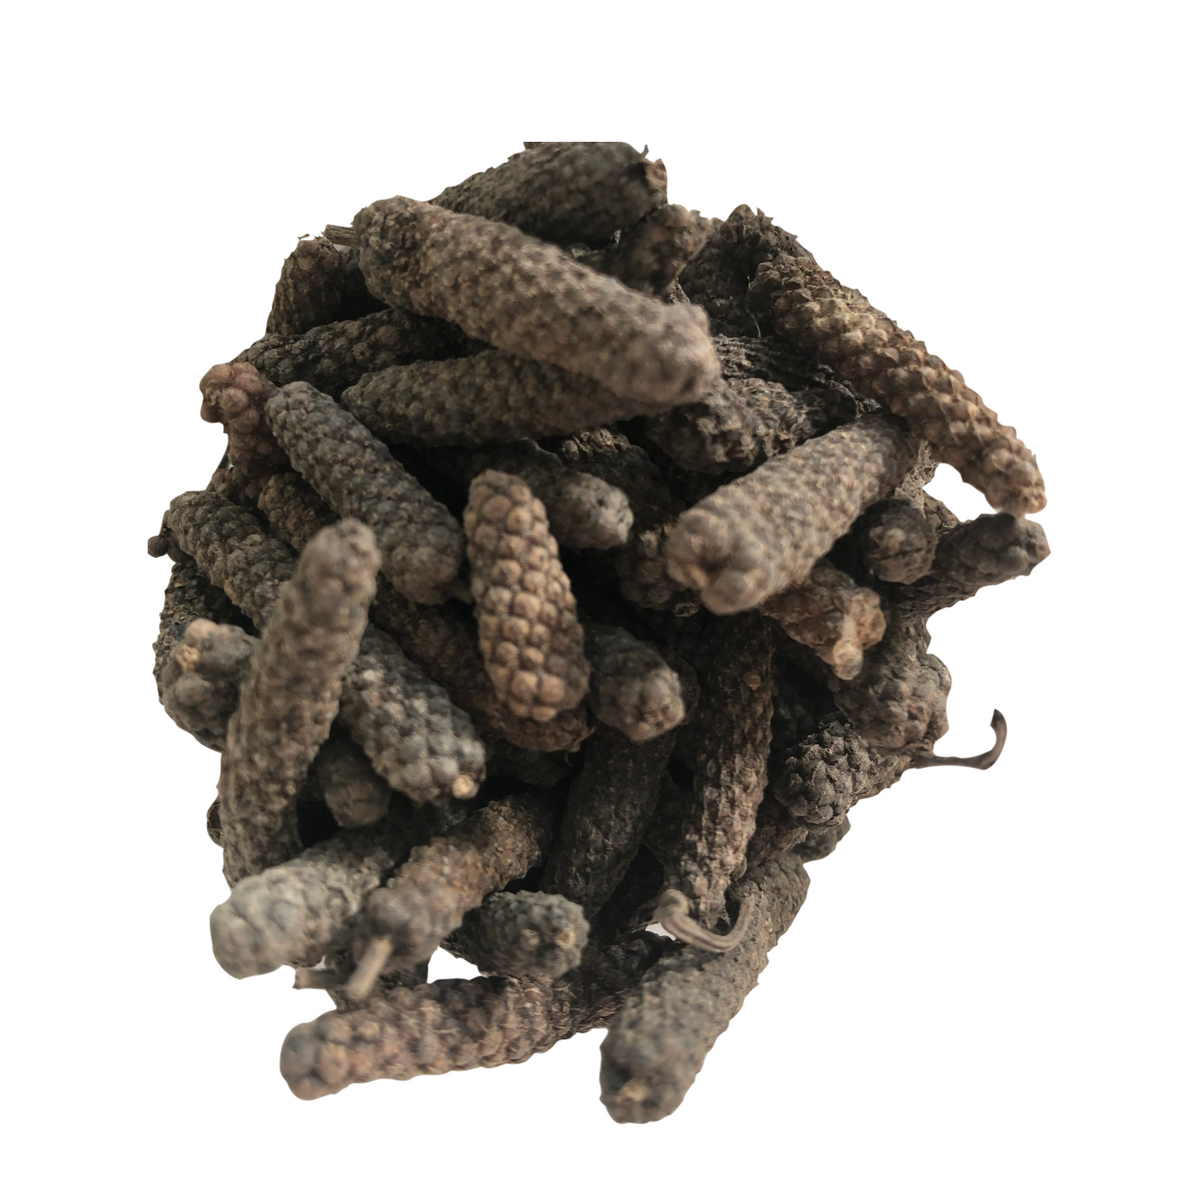 Long pepper whole